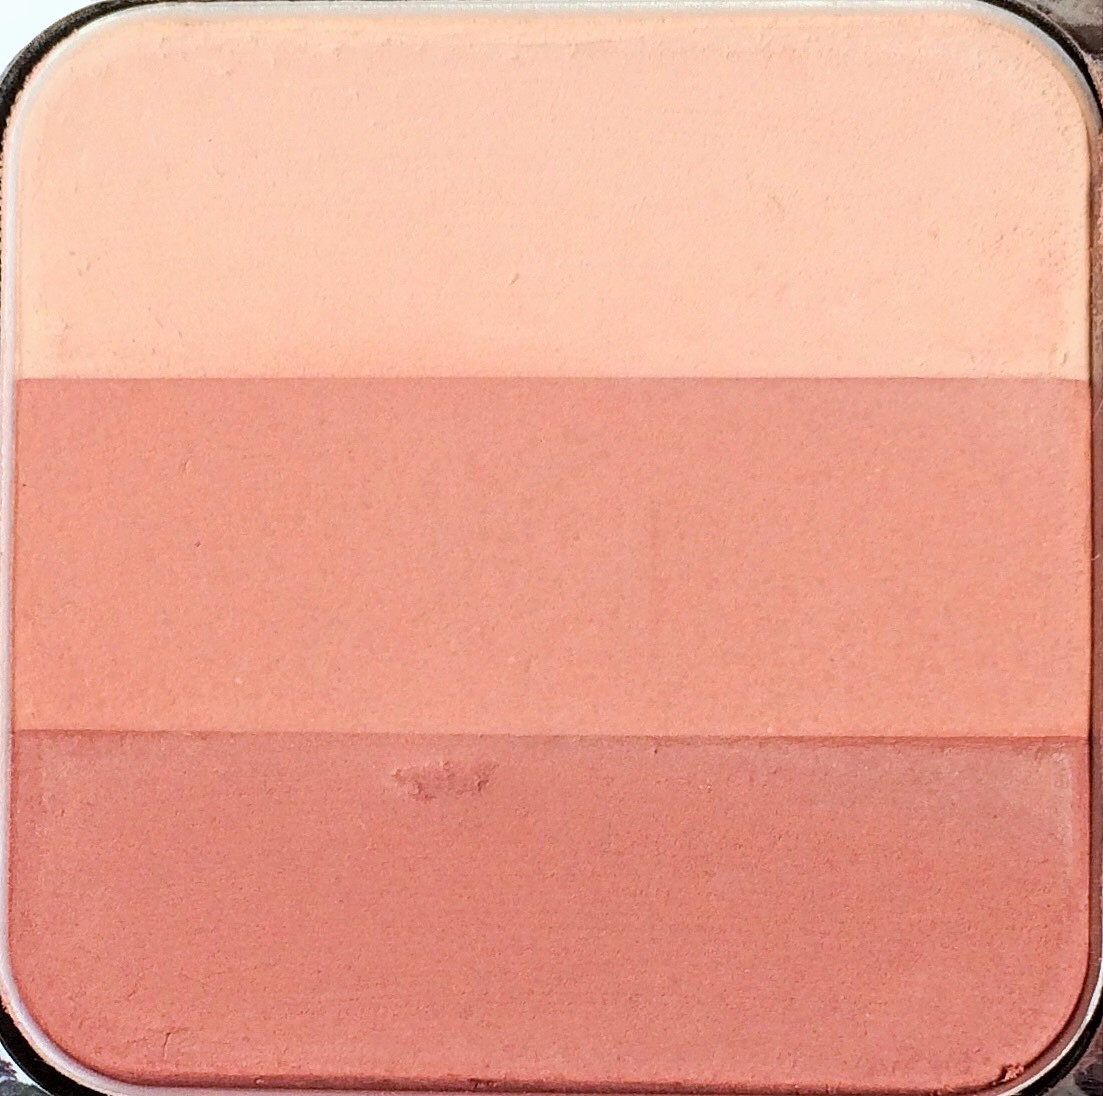 Kiko Shade Fushion Blush Trio Review and Swatches (4).jpg